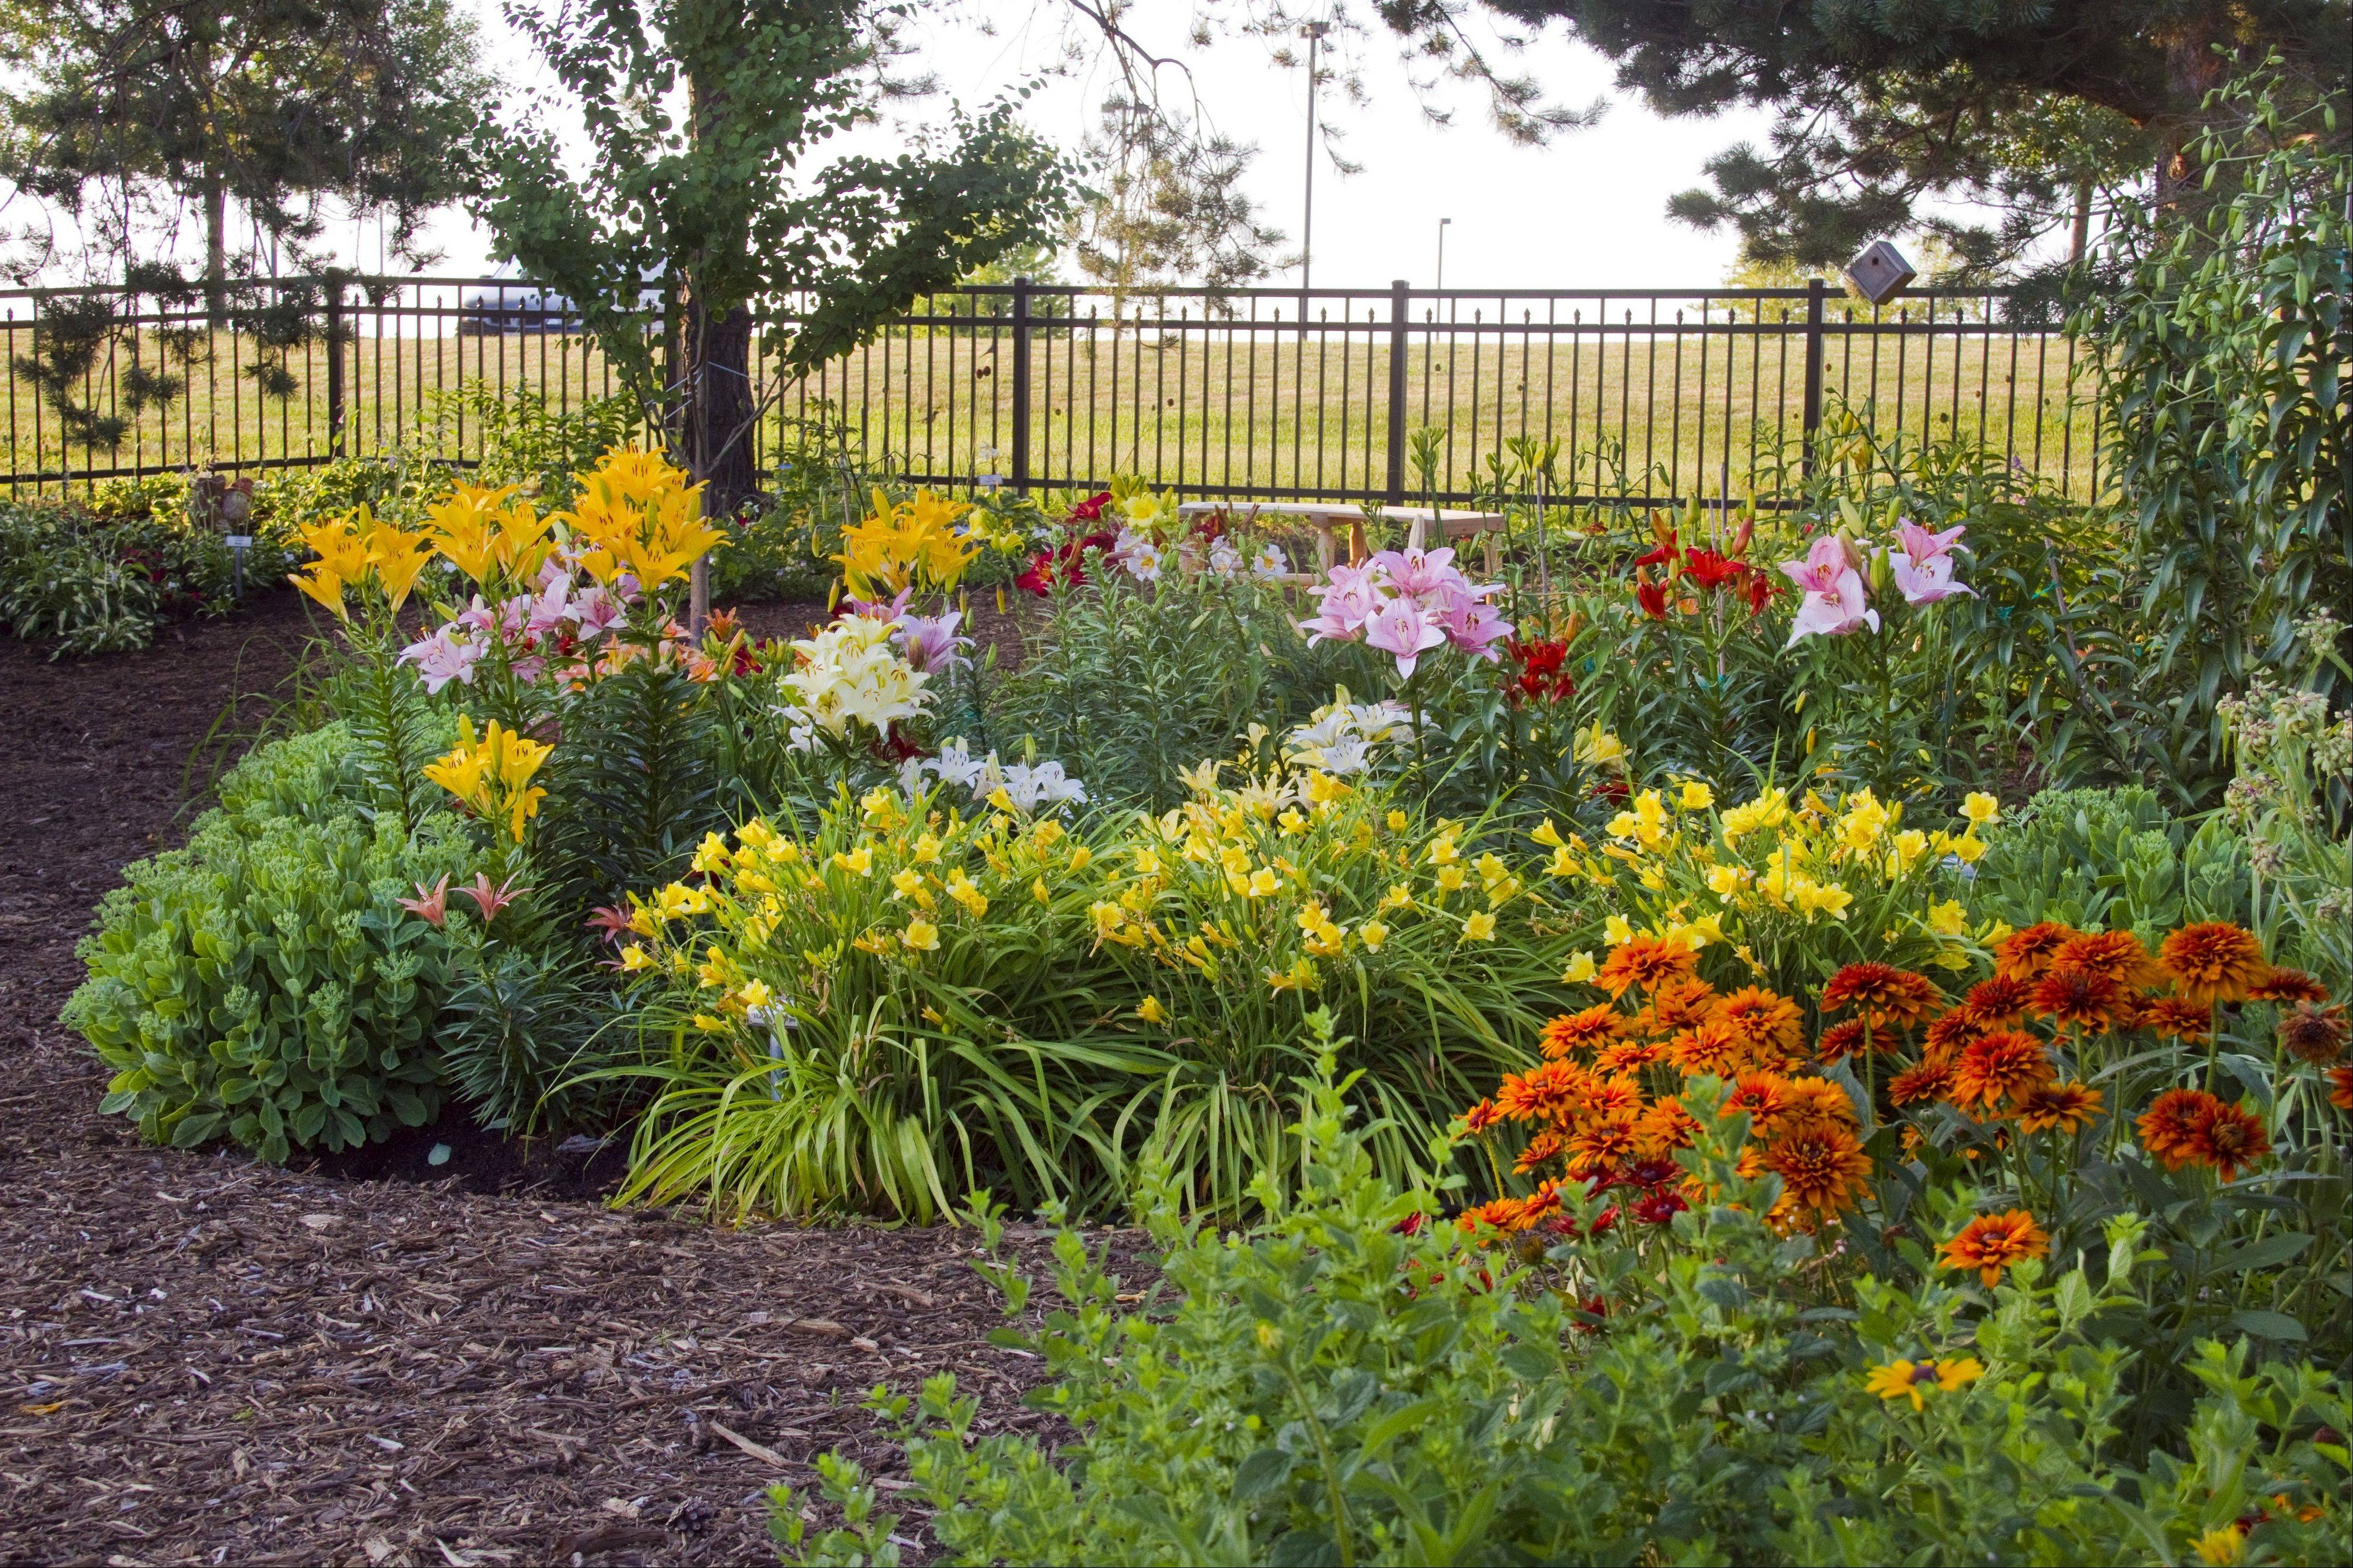 The Demonstration Garden at McHenry County College, tended by the U of I Extension Master Gardeners of McHenry County is the starting point for the annual MCC and U of I Extension Master Gardeners of McHenry County Garden Walk on Saturday, July 14. The demo garden features eye-popping annuals grown from seed by volunteers in the college greenhouse and perennials for both sun and shade, along with a theme garden.